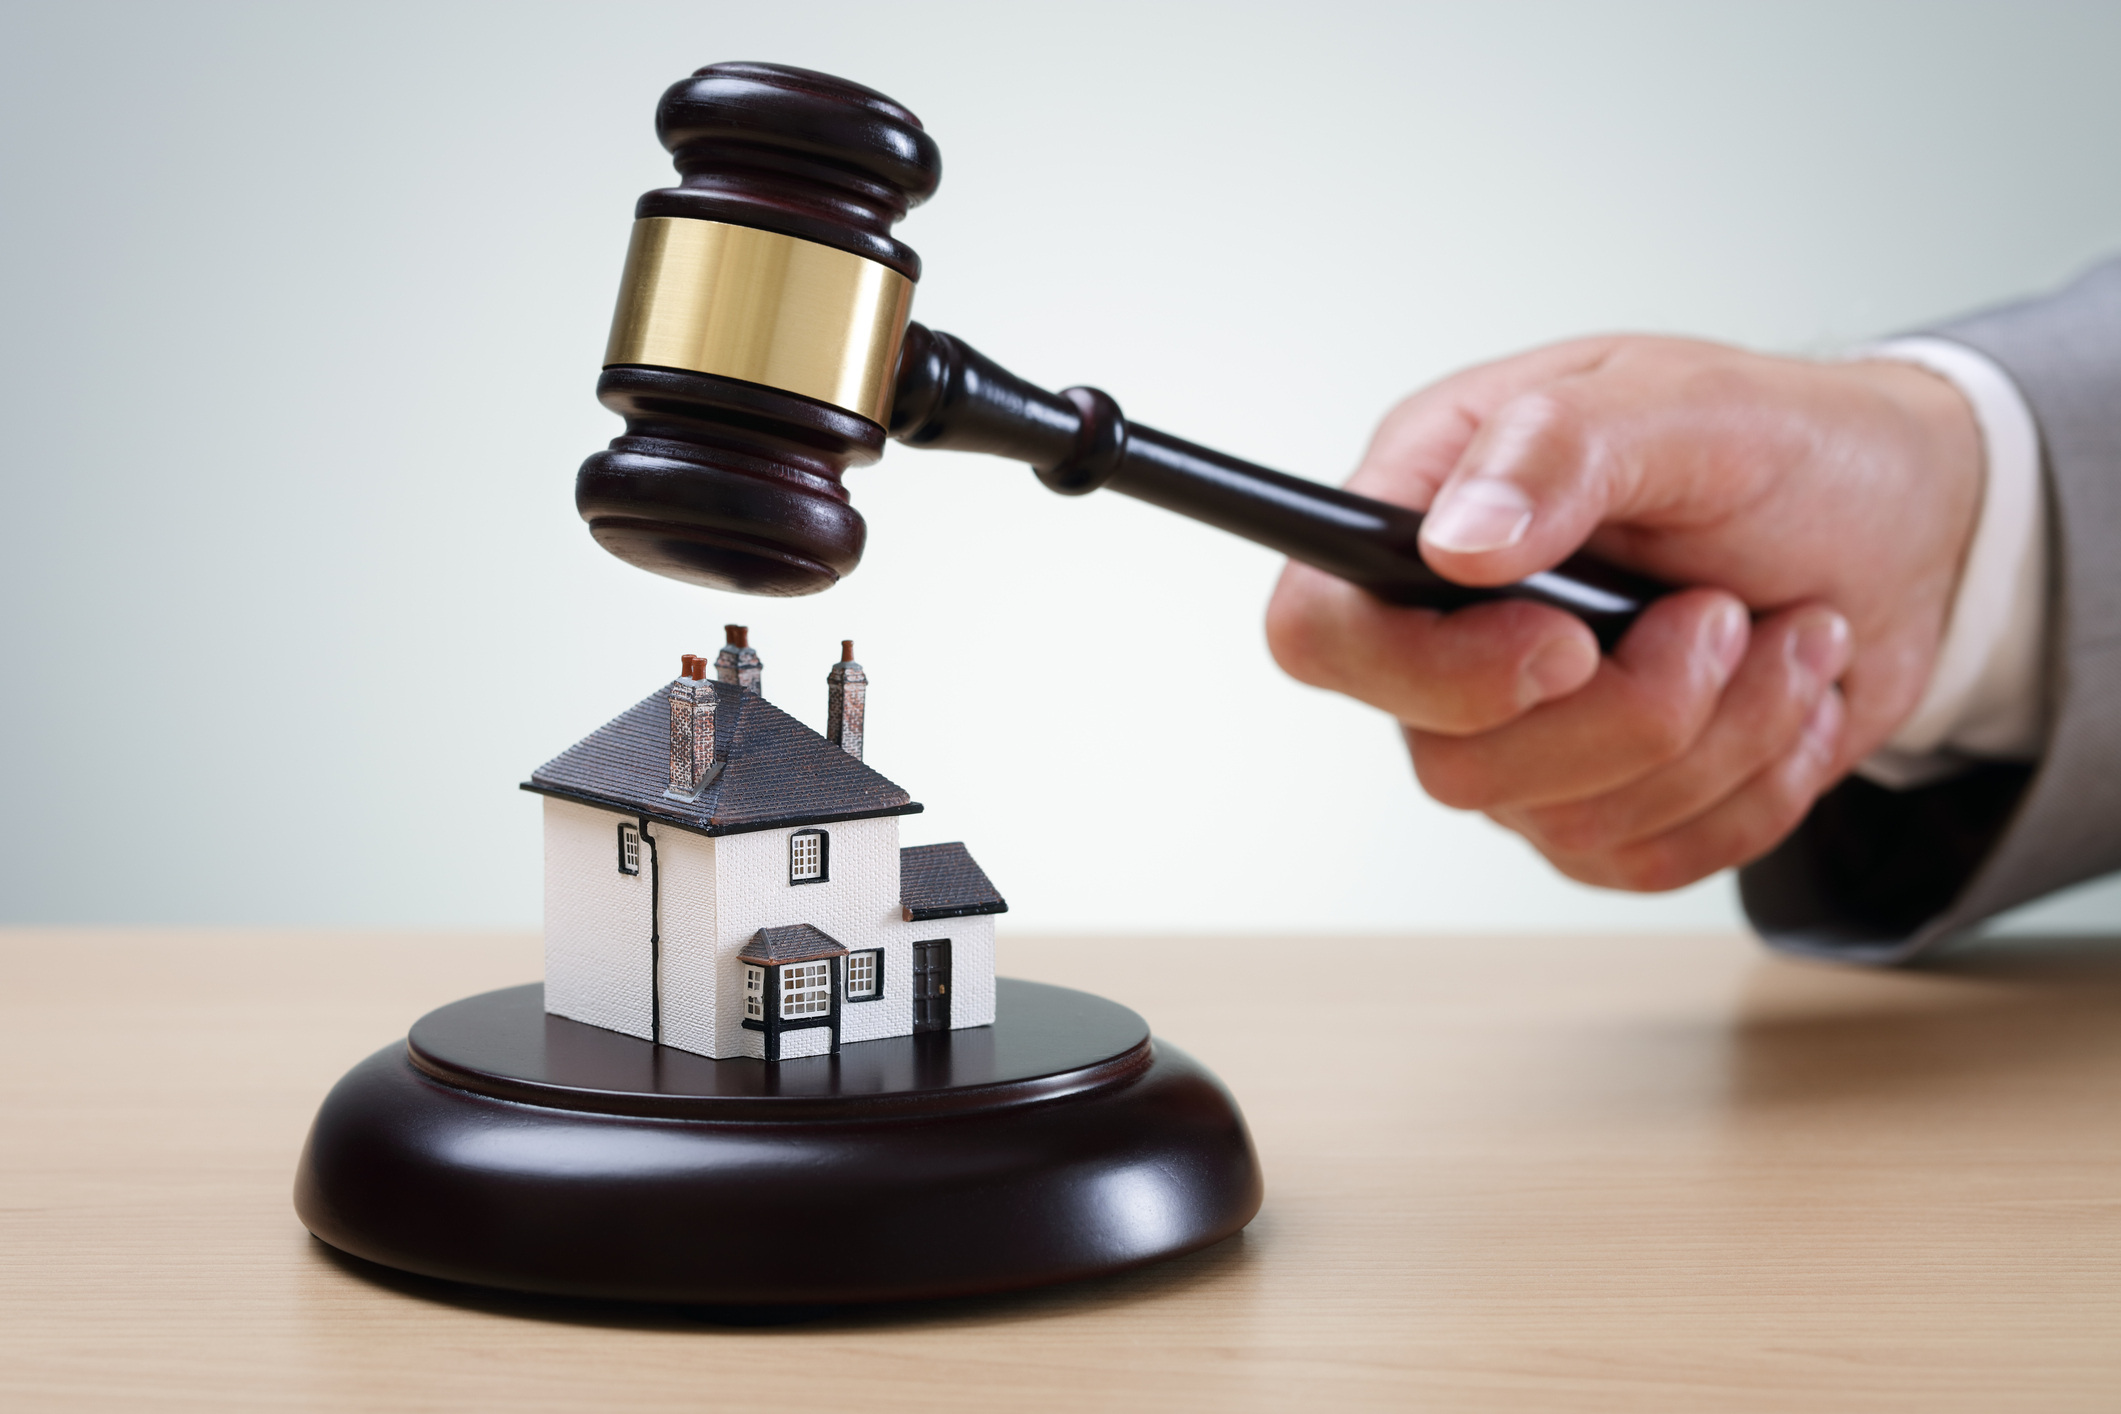 Bidding on a home, gavel and house concept for home ownership, buying, selling or foreclosure